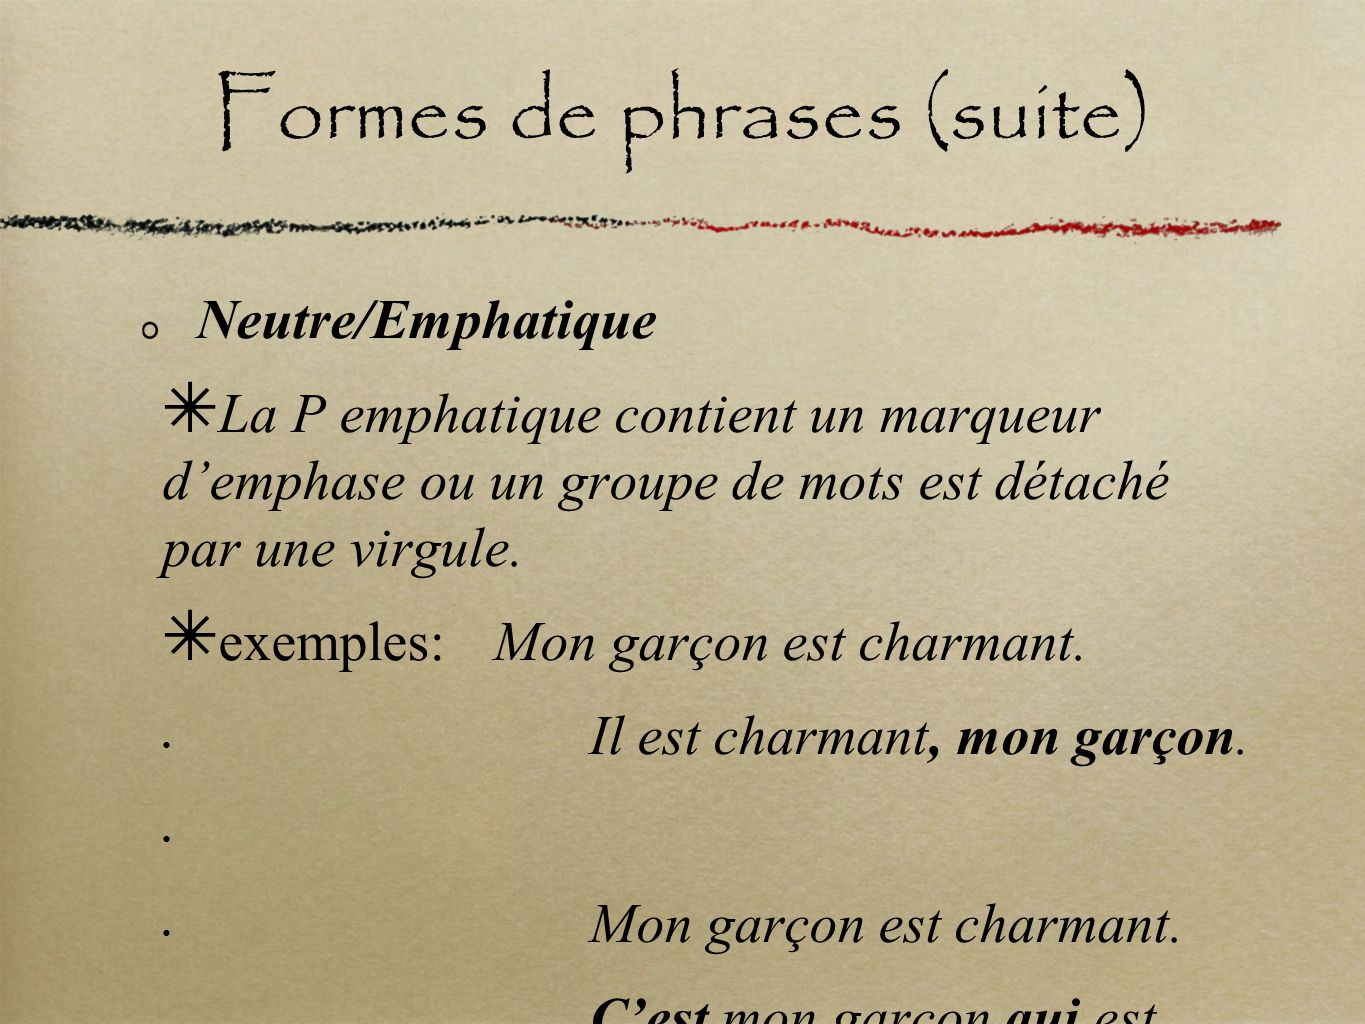 Formes de phrases (suite)